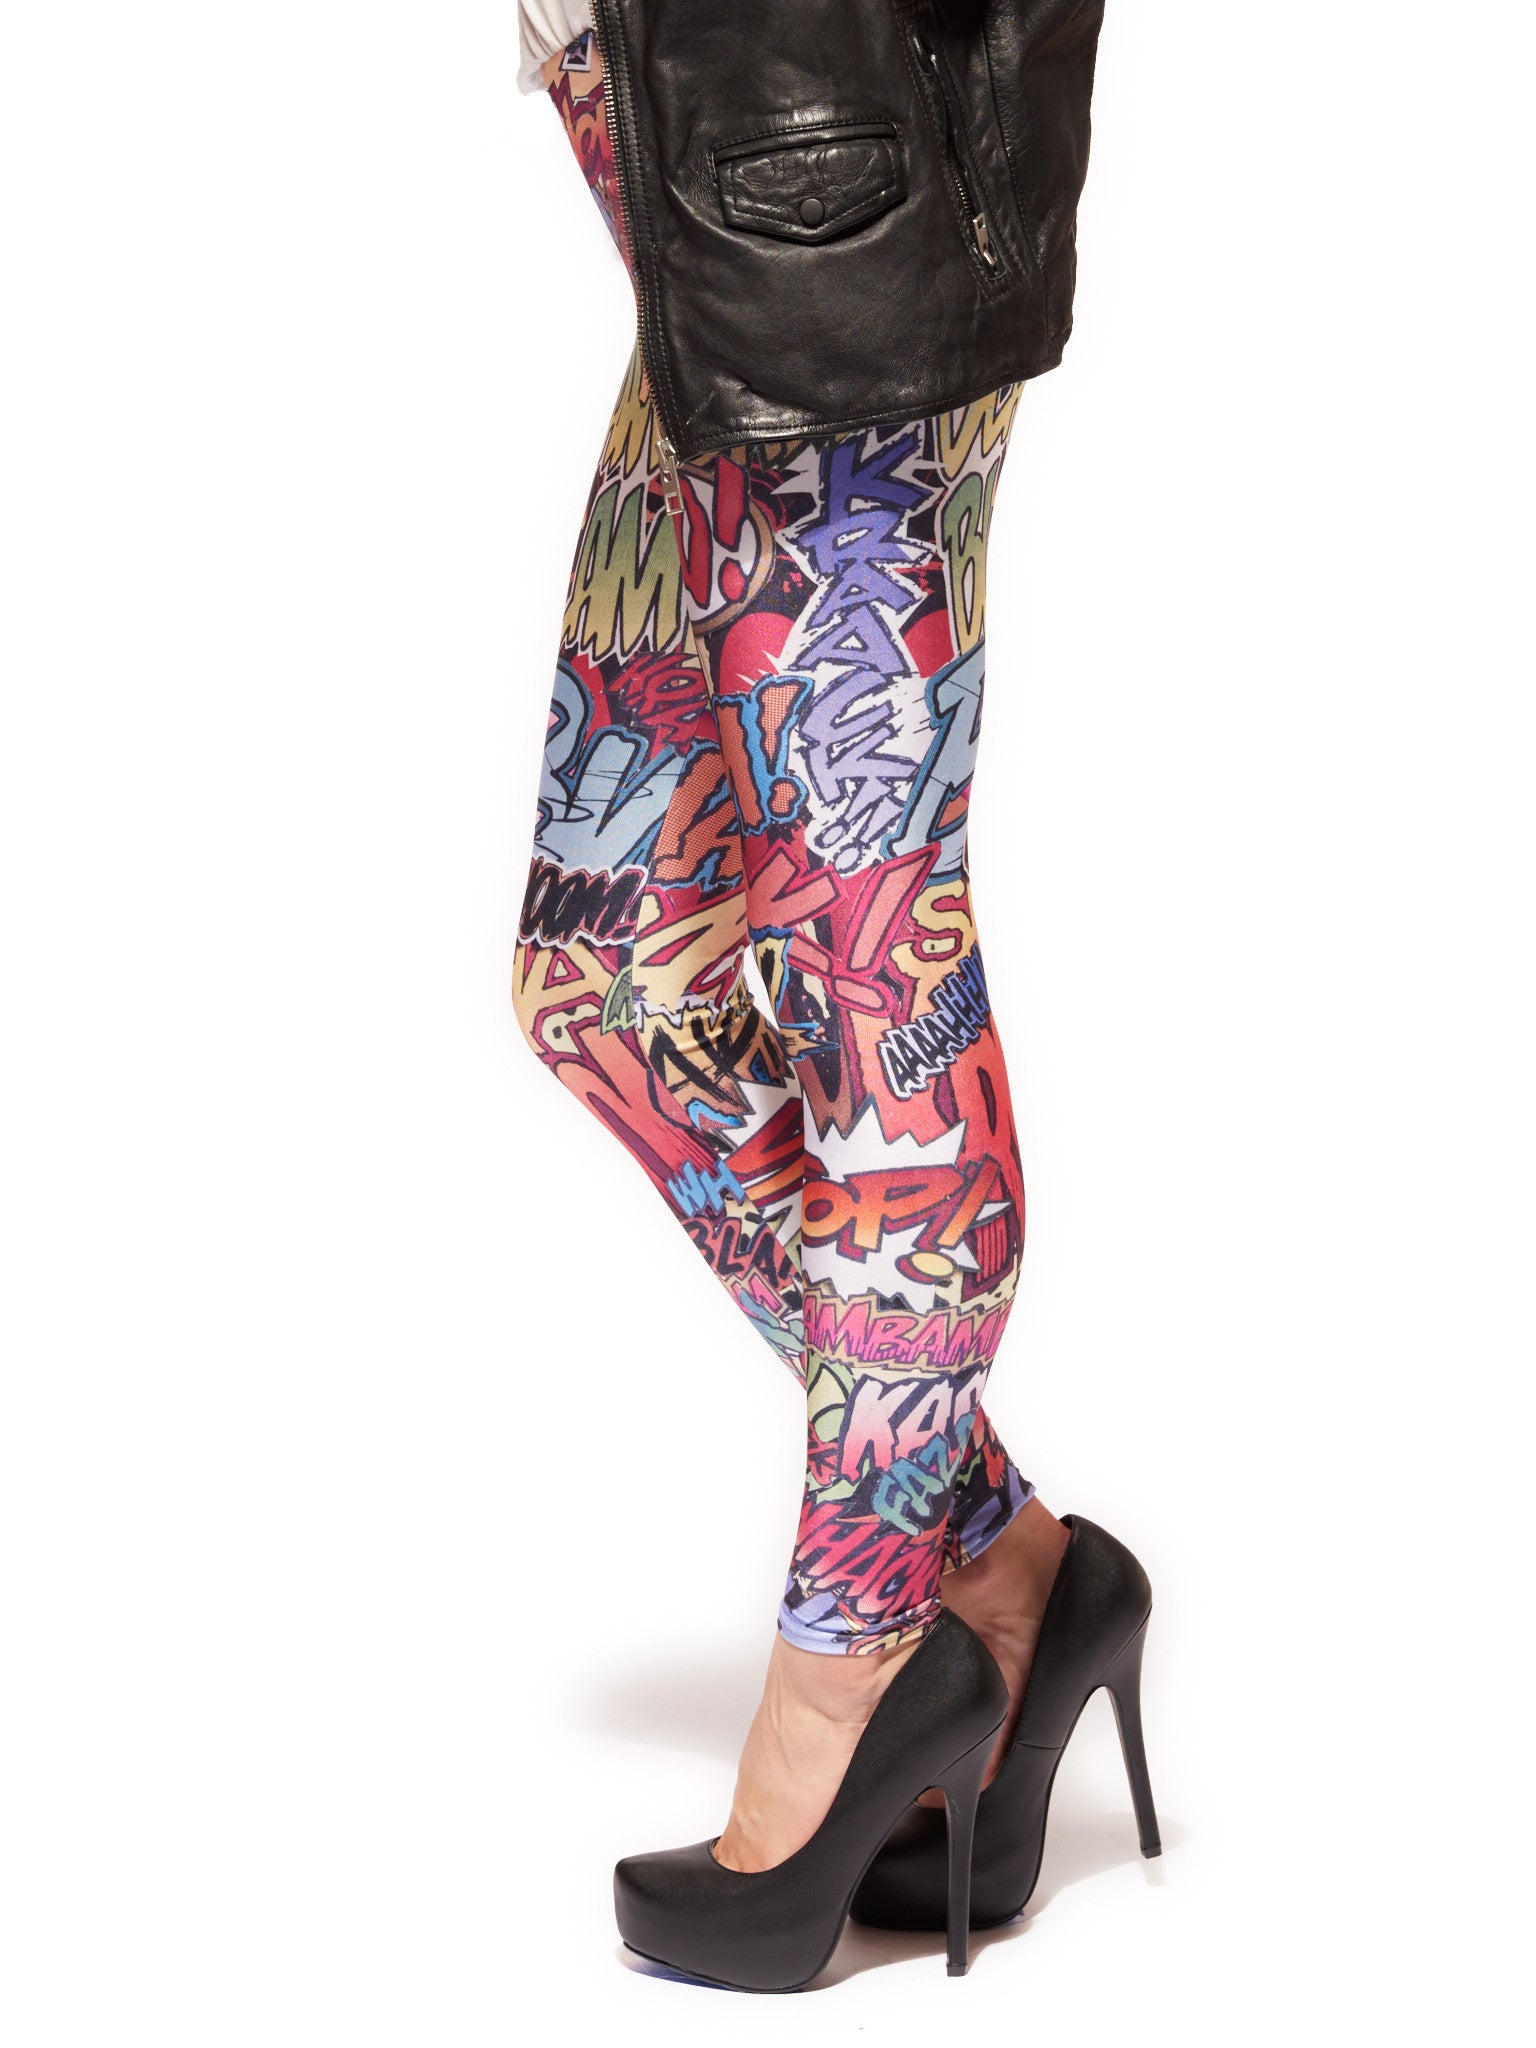 Action Packed Queen West Leggings - Nuvango  - 4